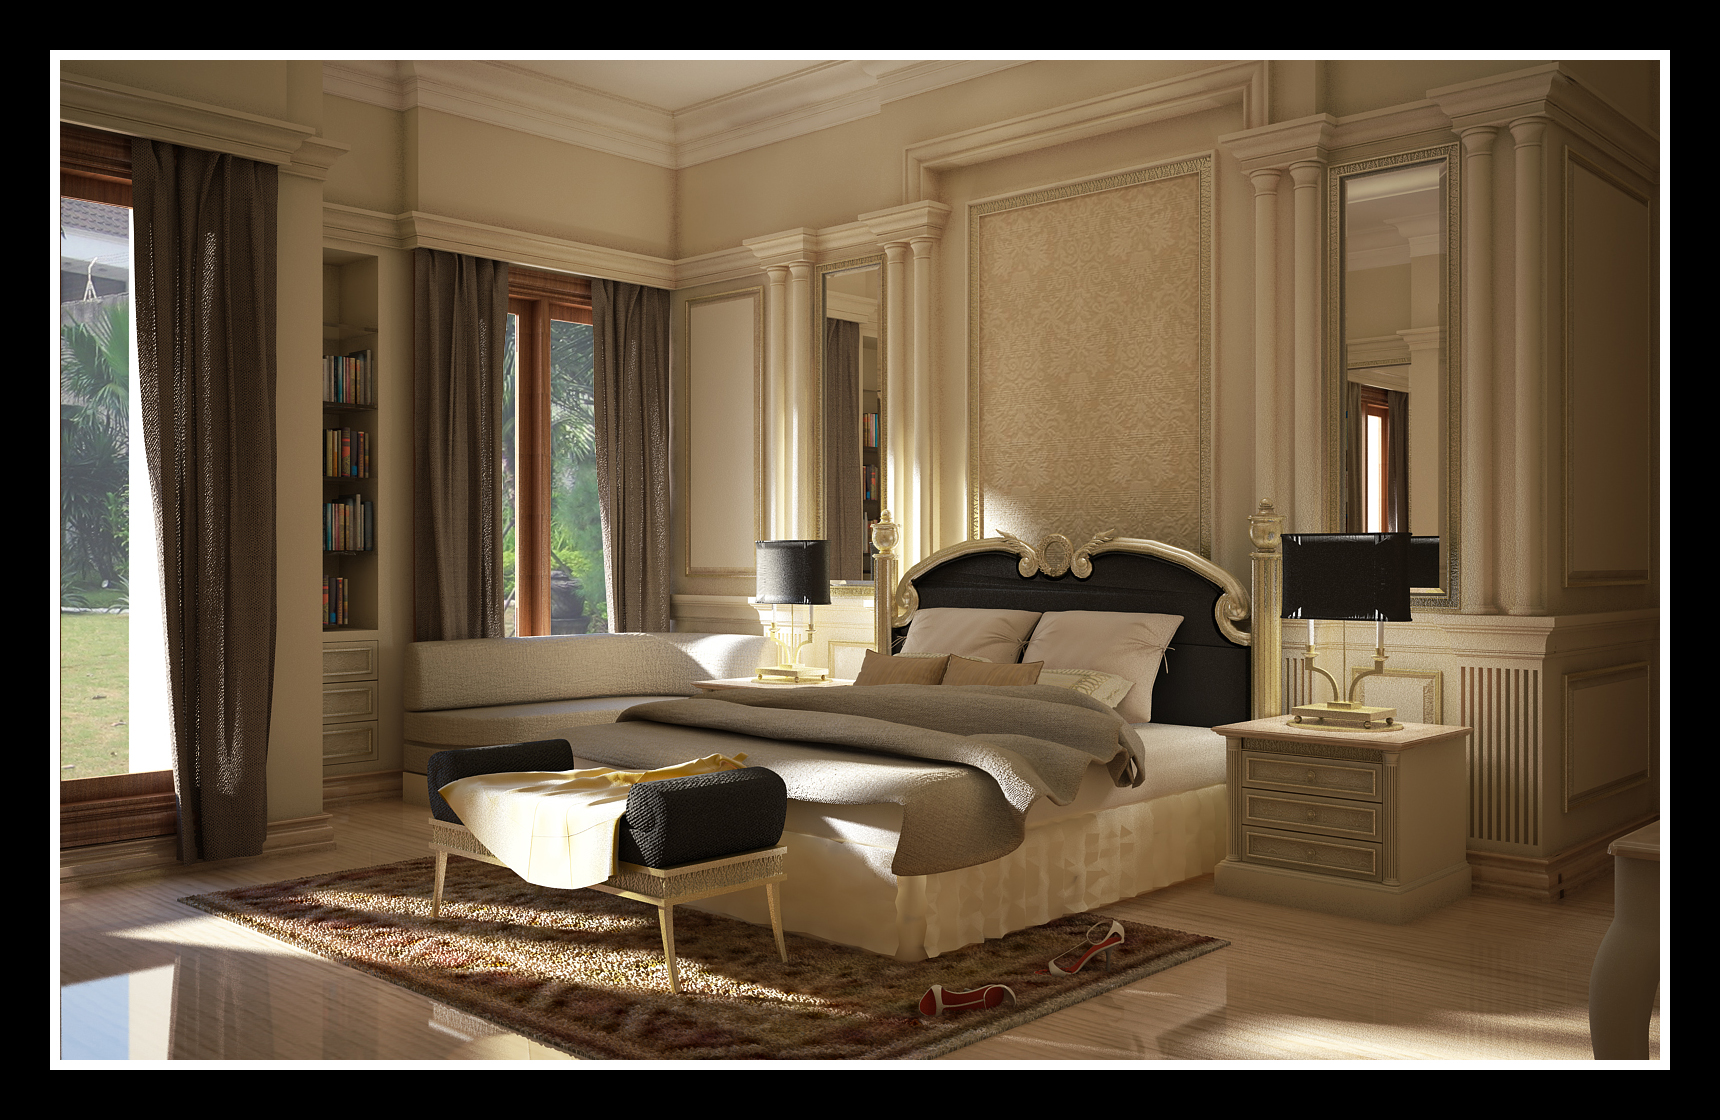 http://www.home-designing.com/wp-content/uploads/2009/02/classic_bedroom_by_r3ynard.jpg